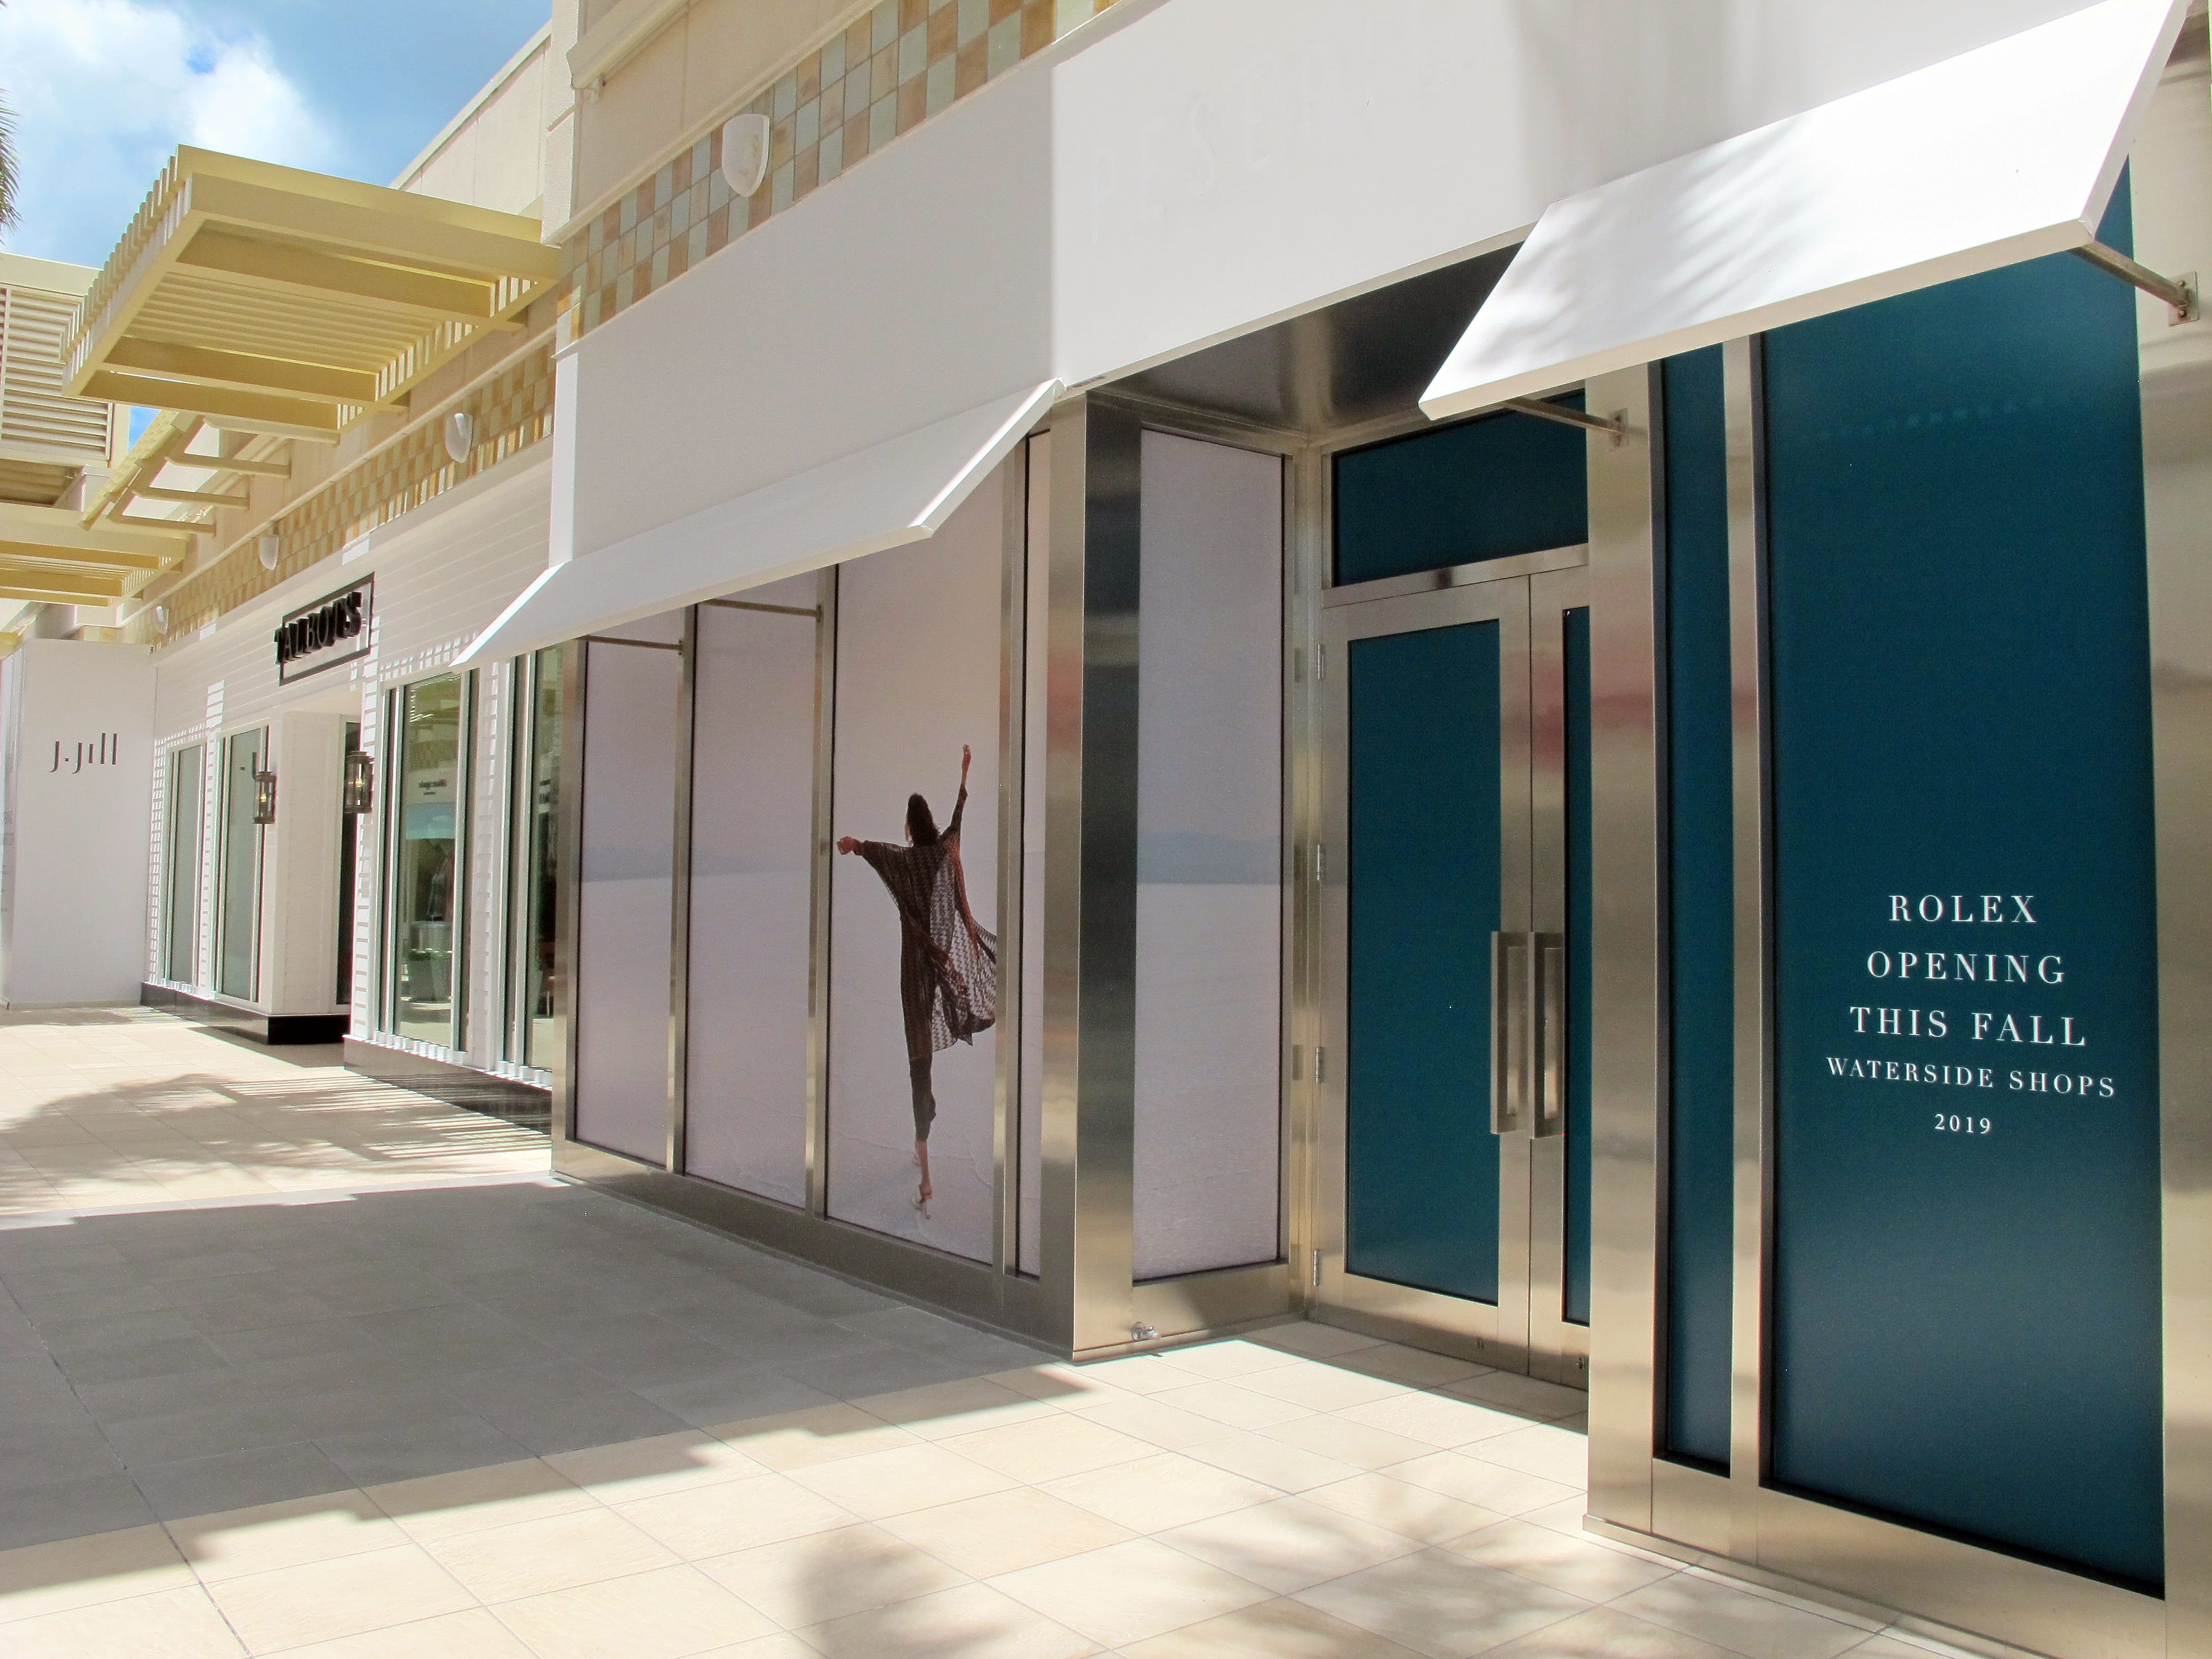 A Rolex luxury watch store is targeted to open this fall at Waterside Shops in Naples.